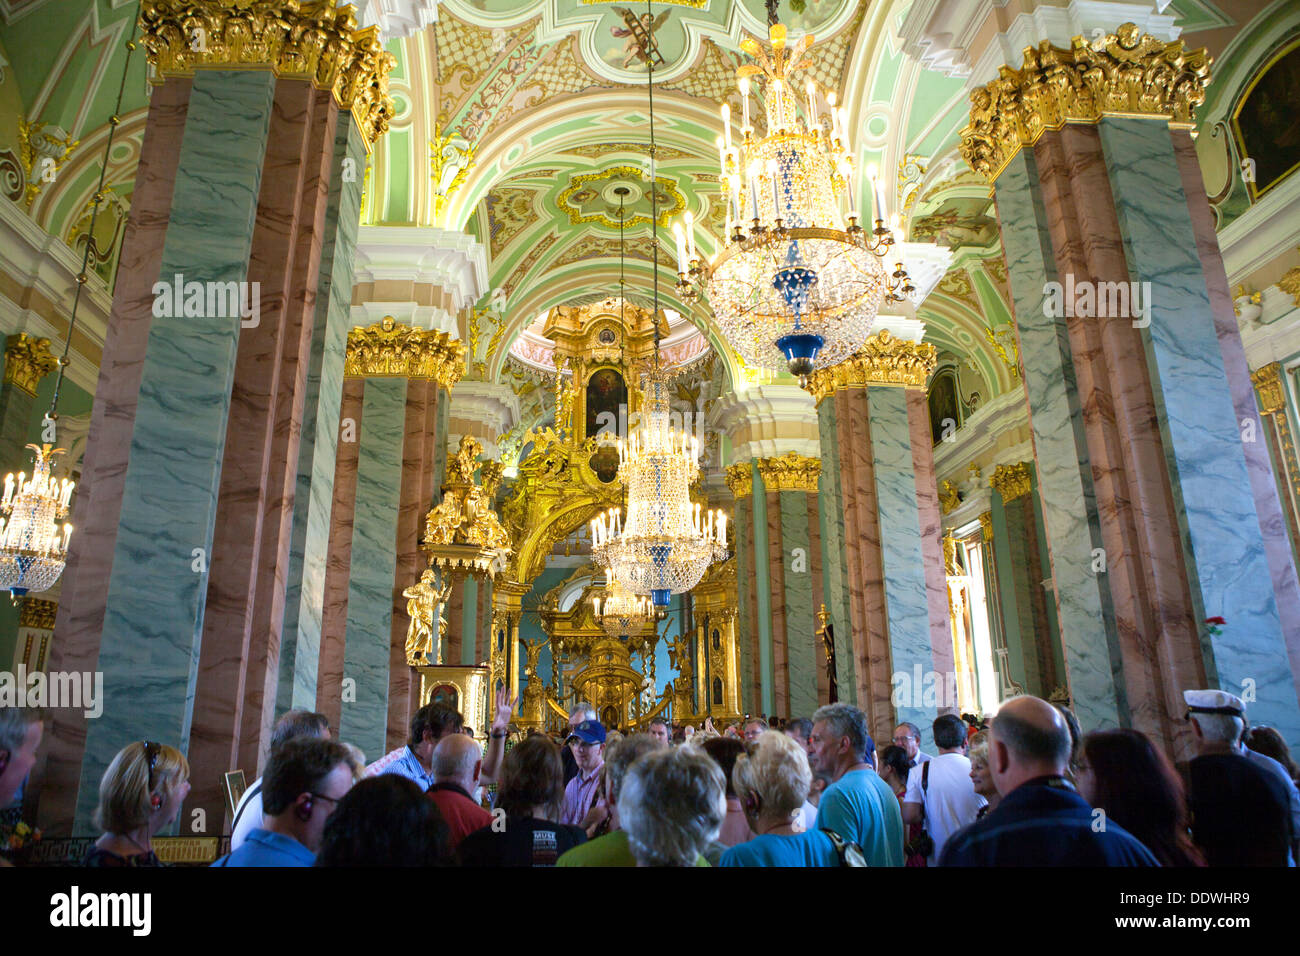 El arte en Rusia. Interior-of-the-st-peter-and-st-paul-cathedral-st-petersburg-russia-DDWHR9